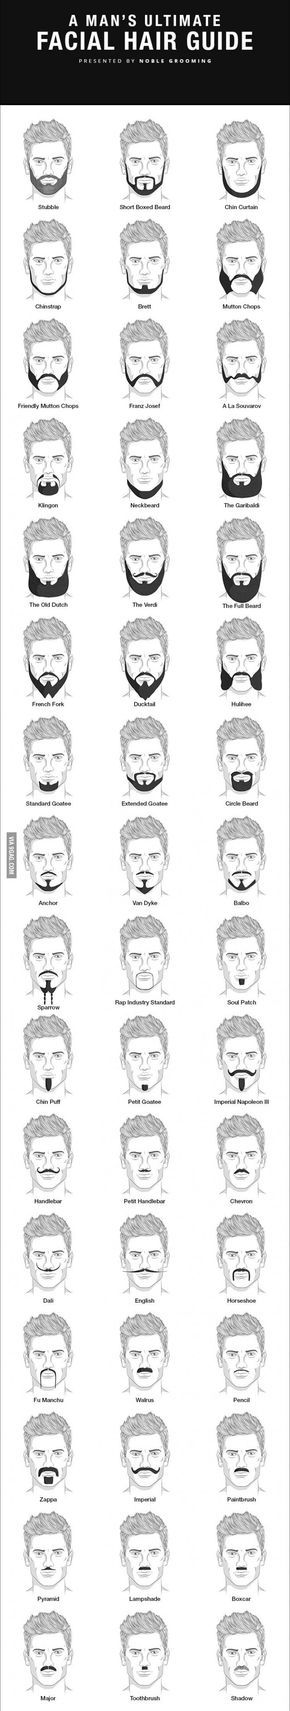 A Man's Ultimate Facial Hair Guide. What's your style? Grow and trim your beard to the perfection. ~ http://ever-unfolding.net/best-beard-trimmer-reviews/